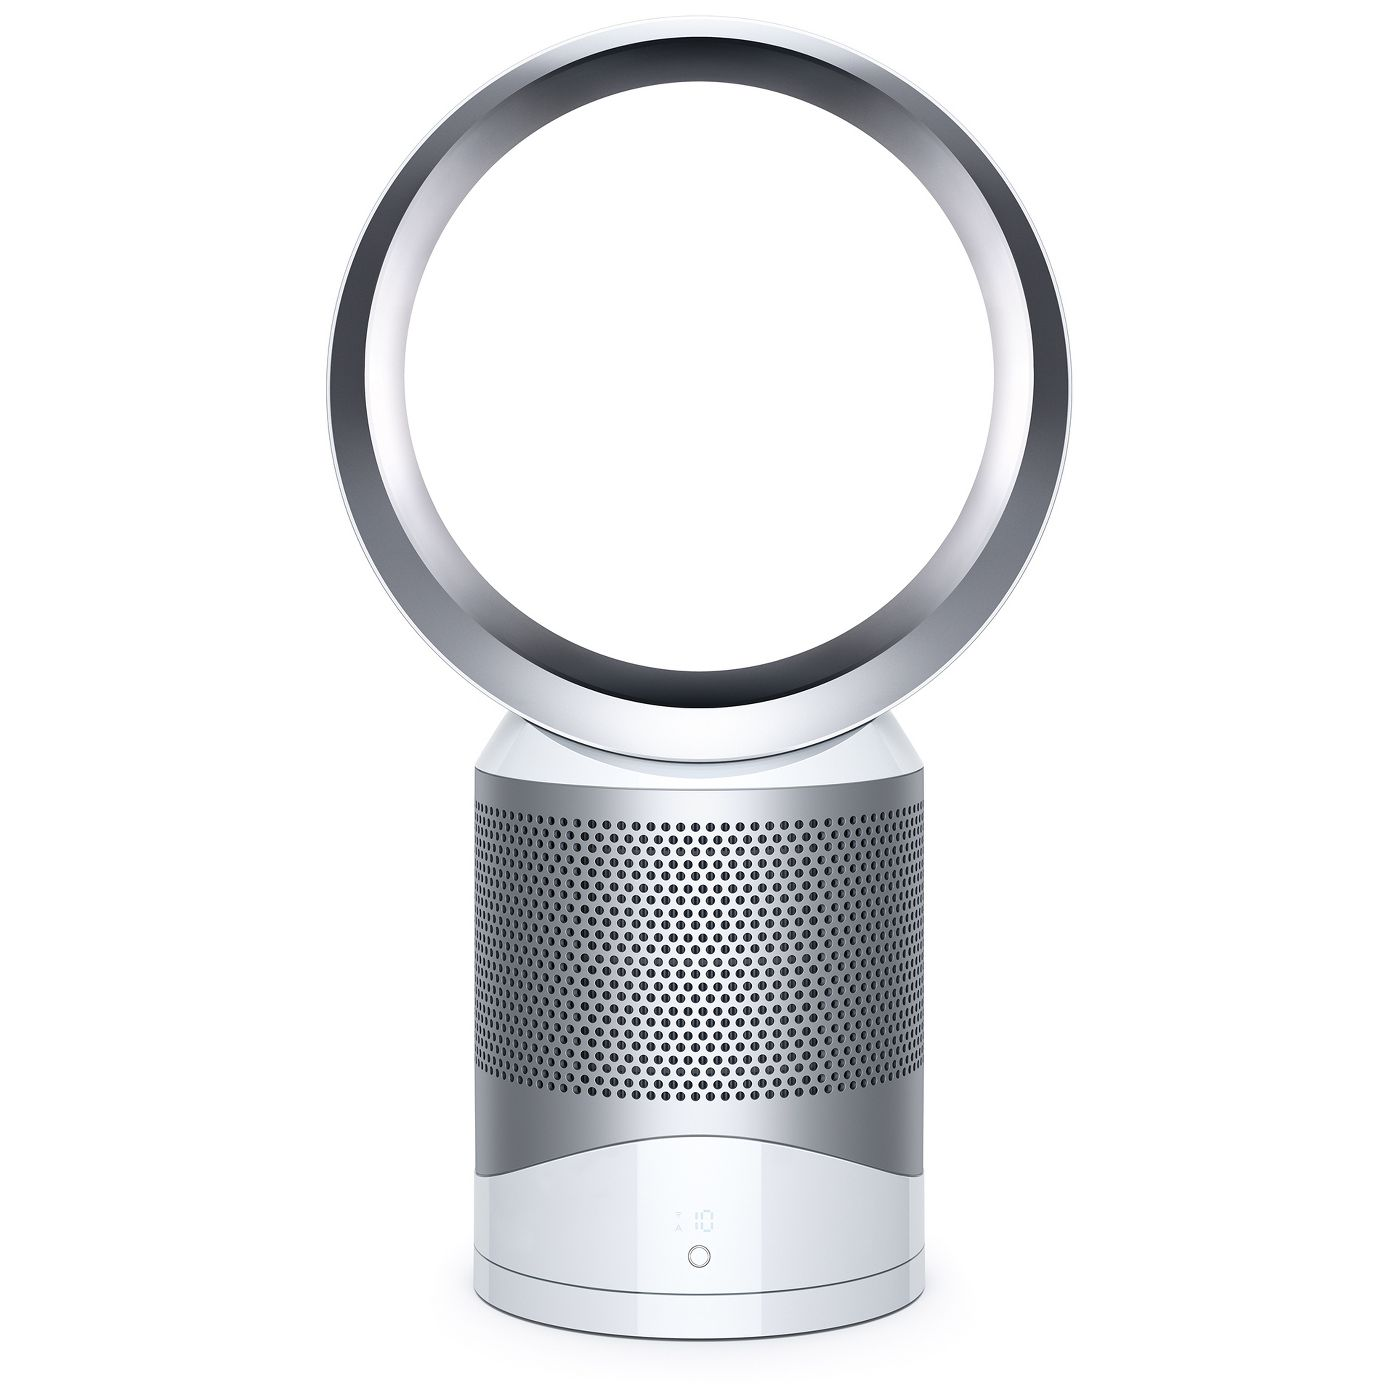 Dyson air purifier and fan